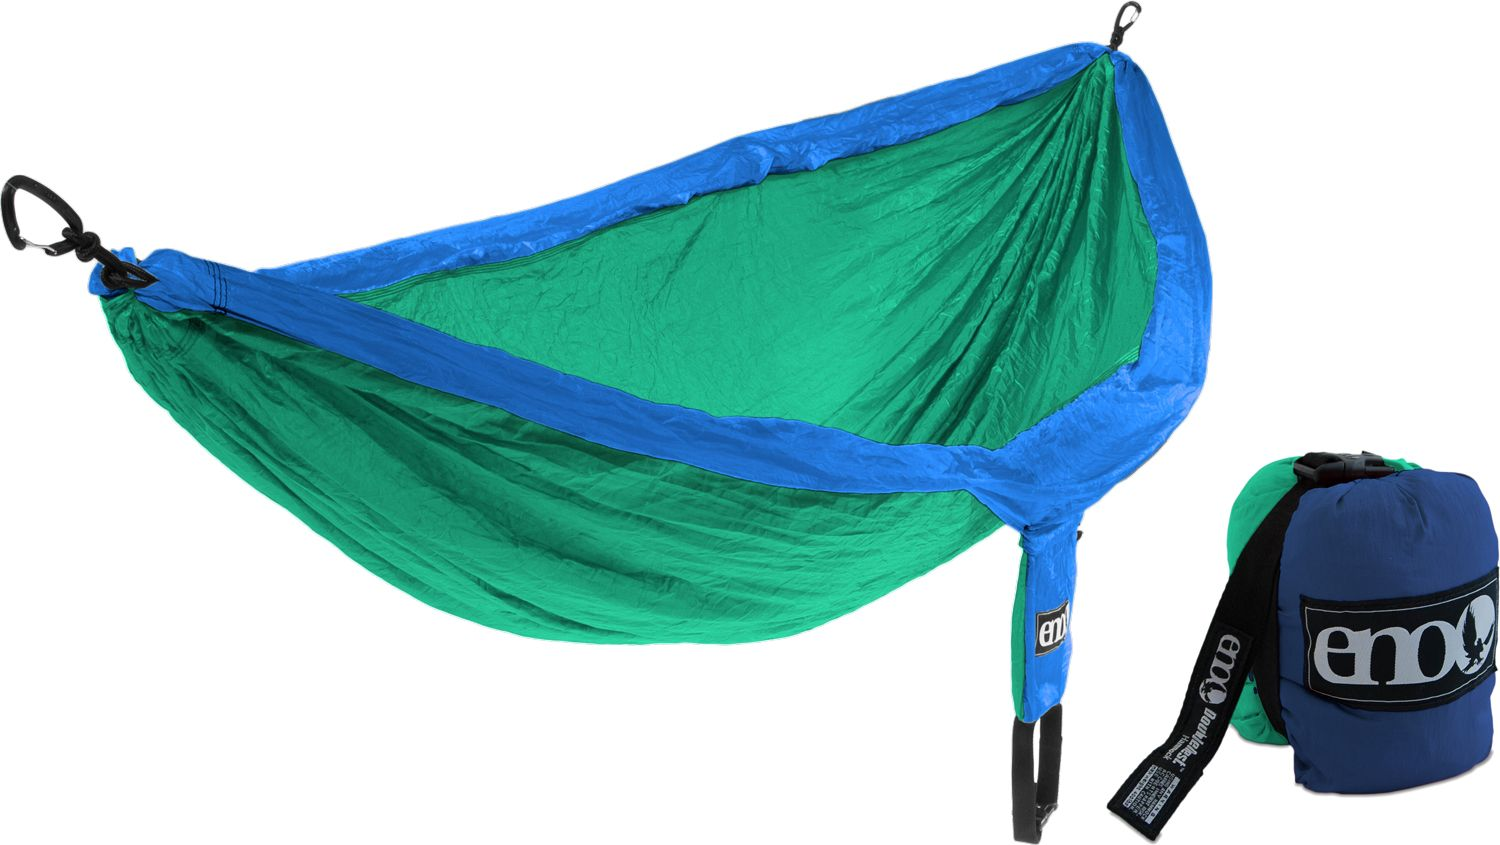 Medium image of eno doublenest hammock